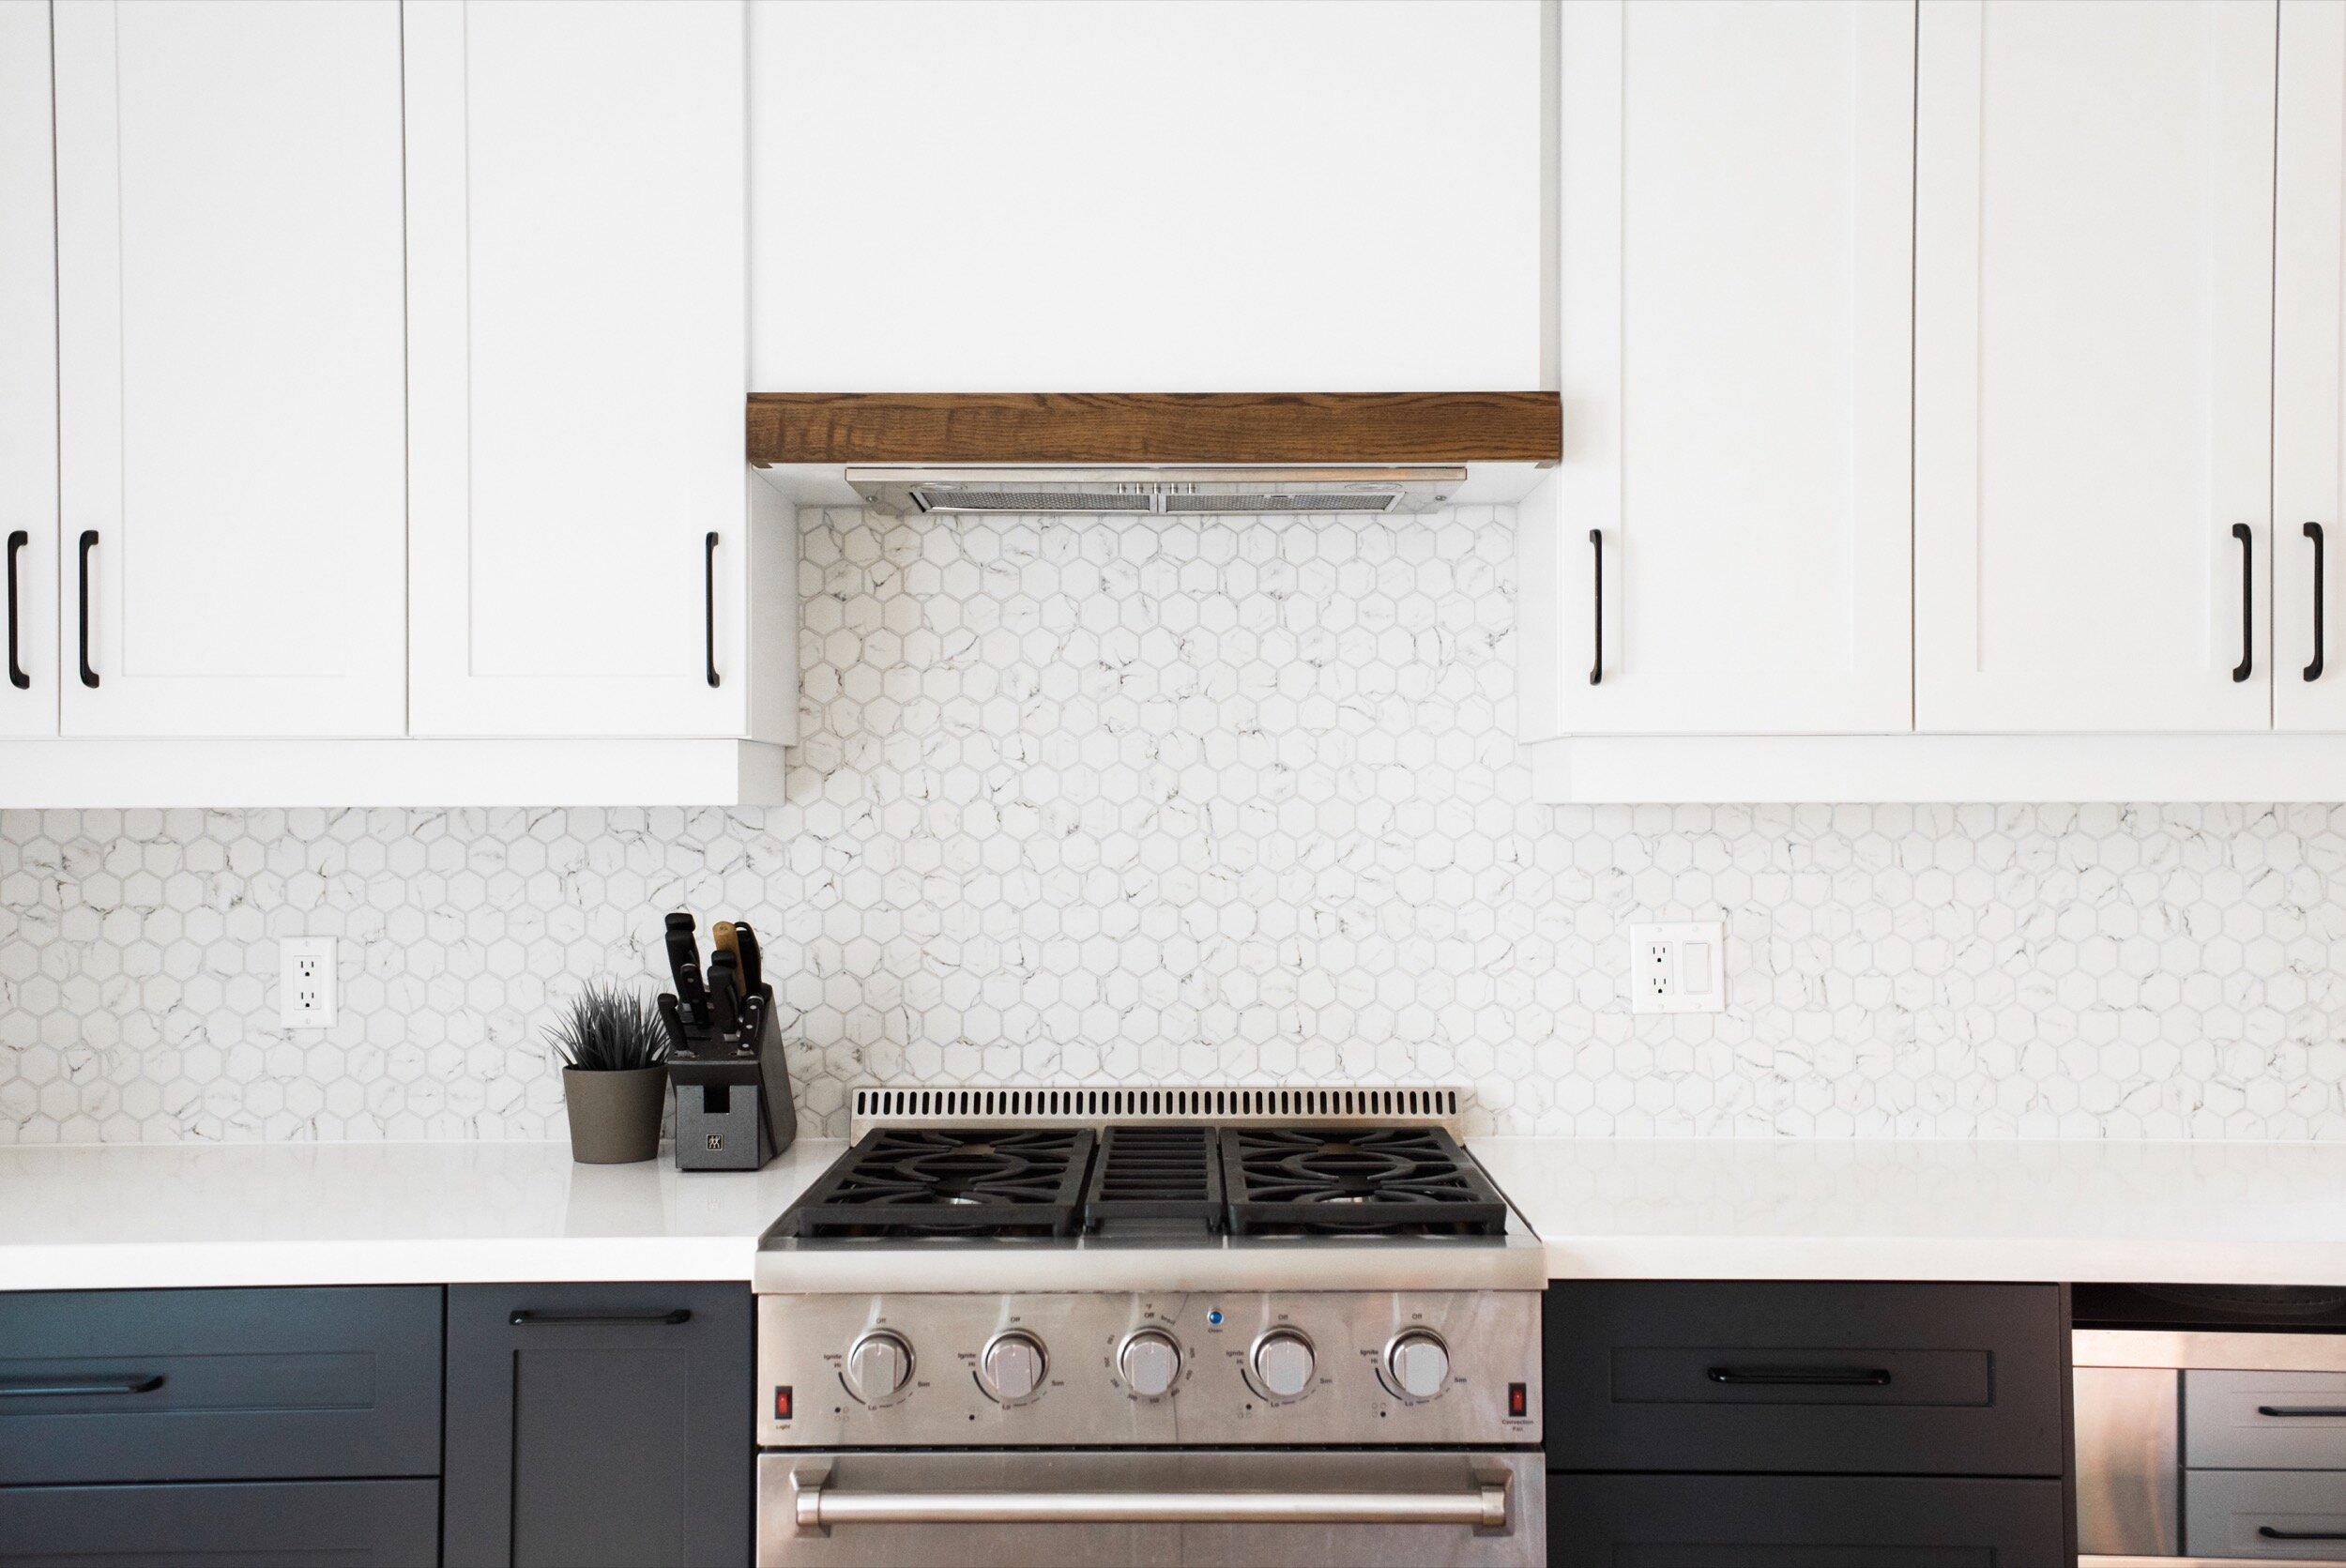 Backsplash: Ciot Stone & Tile